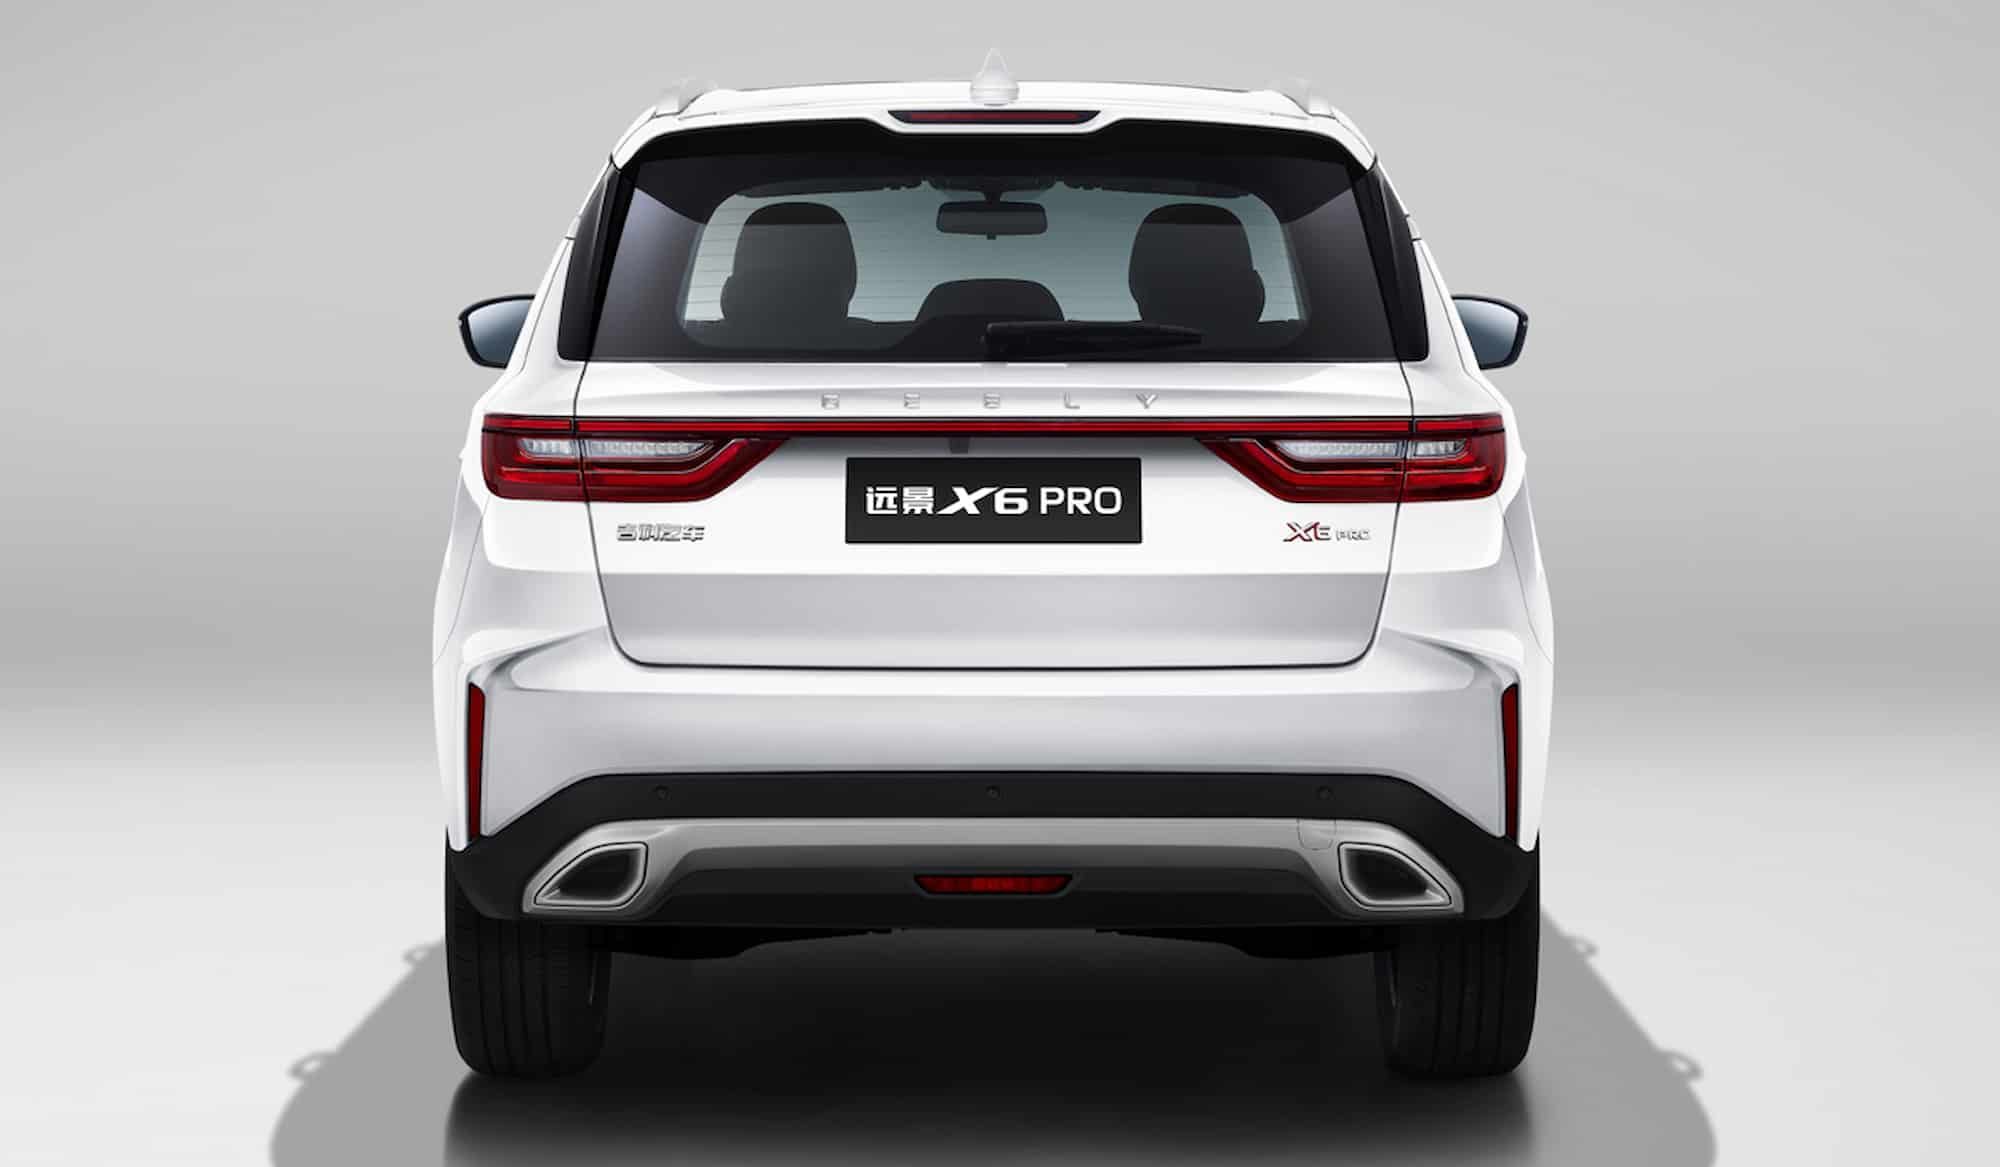 geely vision x6 pro2